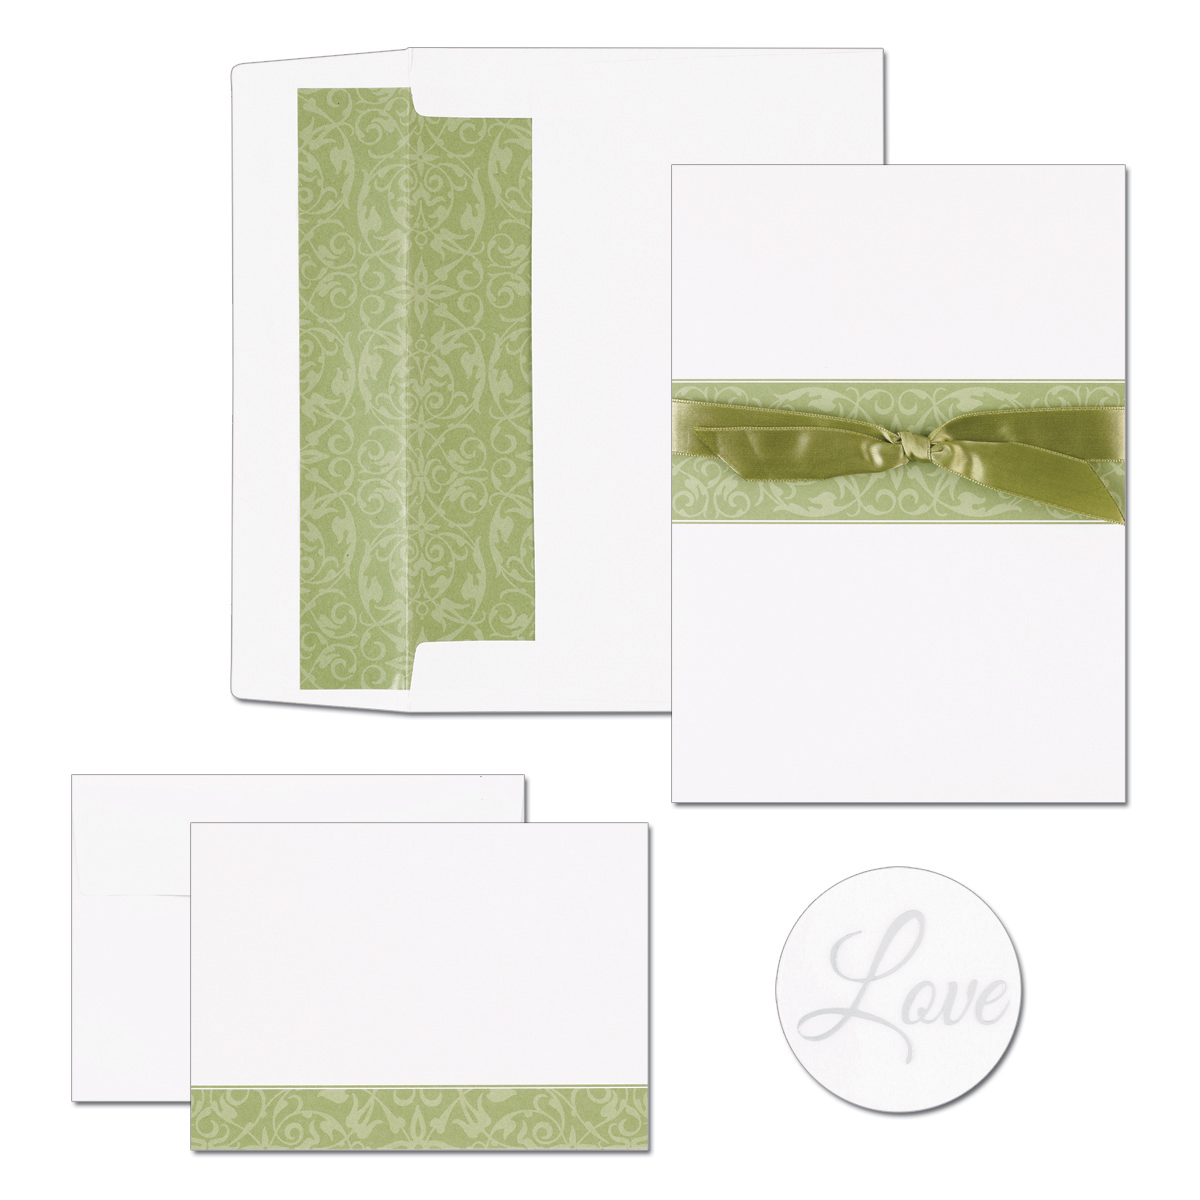 "Sage Swirl Band Invitations and Note Card Kit  - GREAT DEAL! This product is great for Weddings and other special events.   Sage Swirl design with bow includes 50 folders, 50 invitations, 50 lined envelopes, 50 note cards and 50 note card envelopes plus 50 bonus seals size of note card is 5.5"" x 7.75"" note card  4.875"" x 3.375"" 65lb. card stock.If you are ordering personalized we will only print ""thank you"" on the note card in the same font as the personalized invitation.  We do not print on the inside of note card.  Please lindicate in the Notes if you would like note card printed."